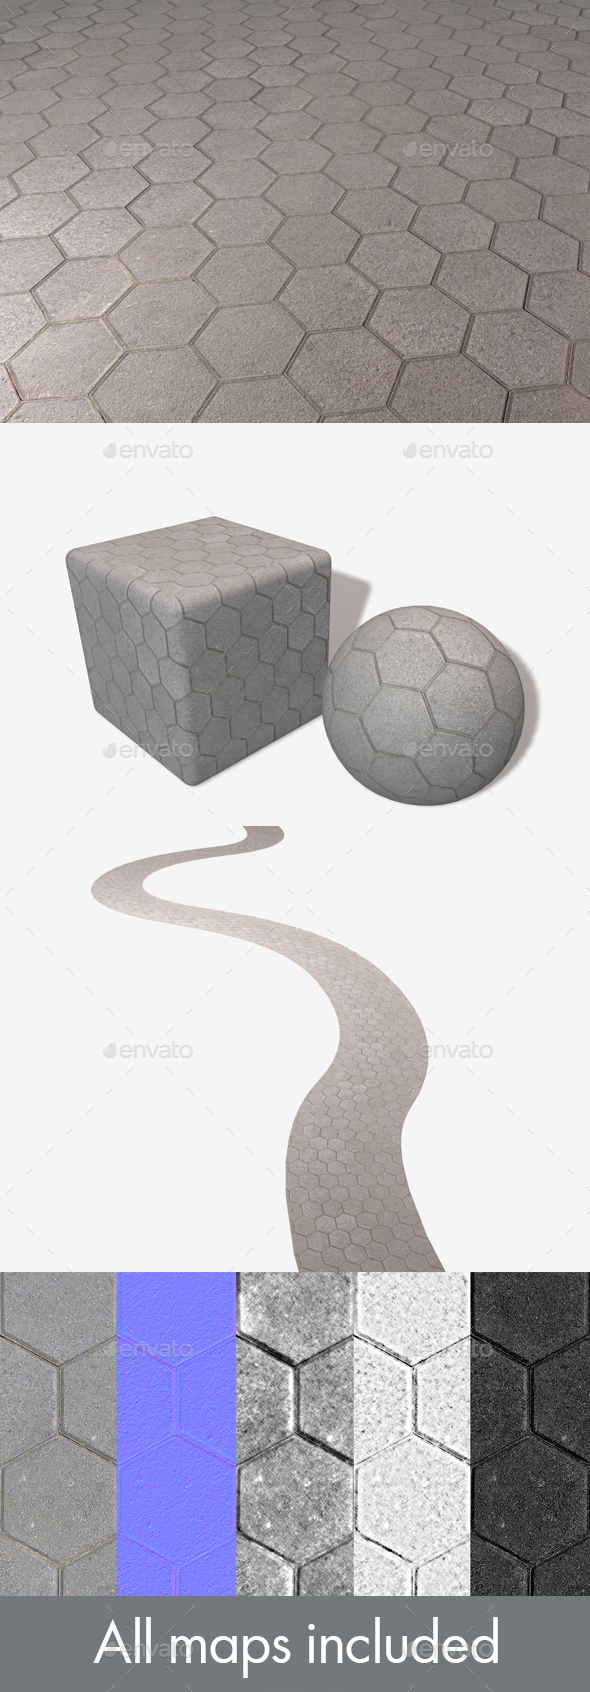 Hexagon Paving Slabs Seamless Texture - 3DOcean Item for Sale